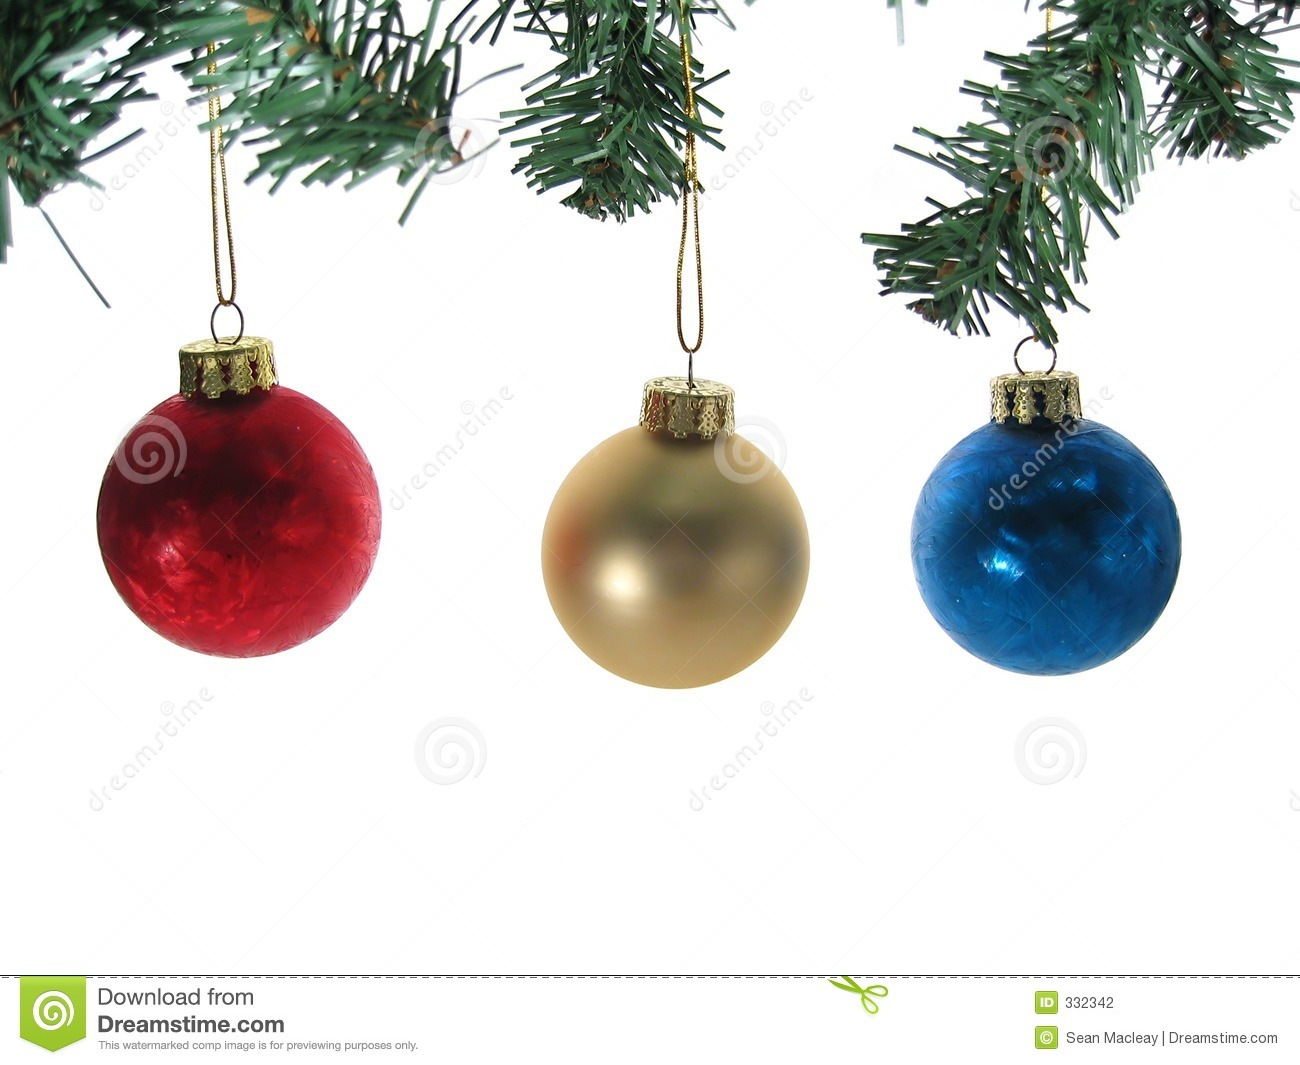 christmas tree ornaments three ornaments with tree branches isolated 29284